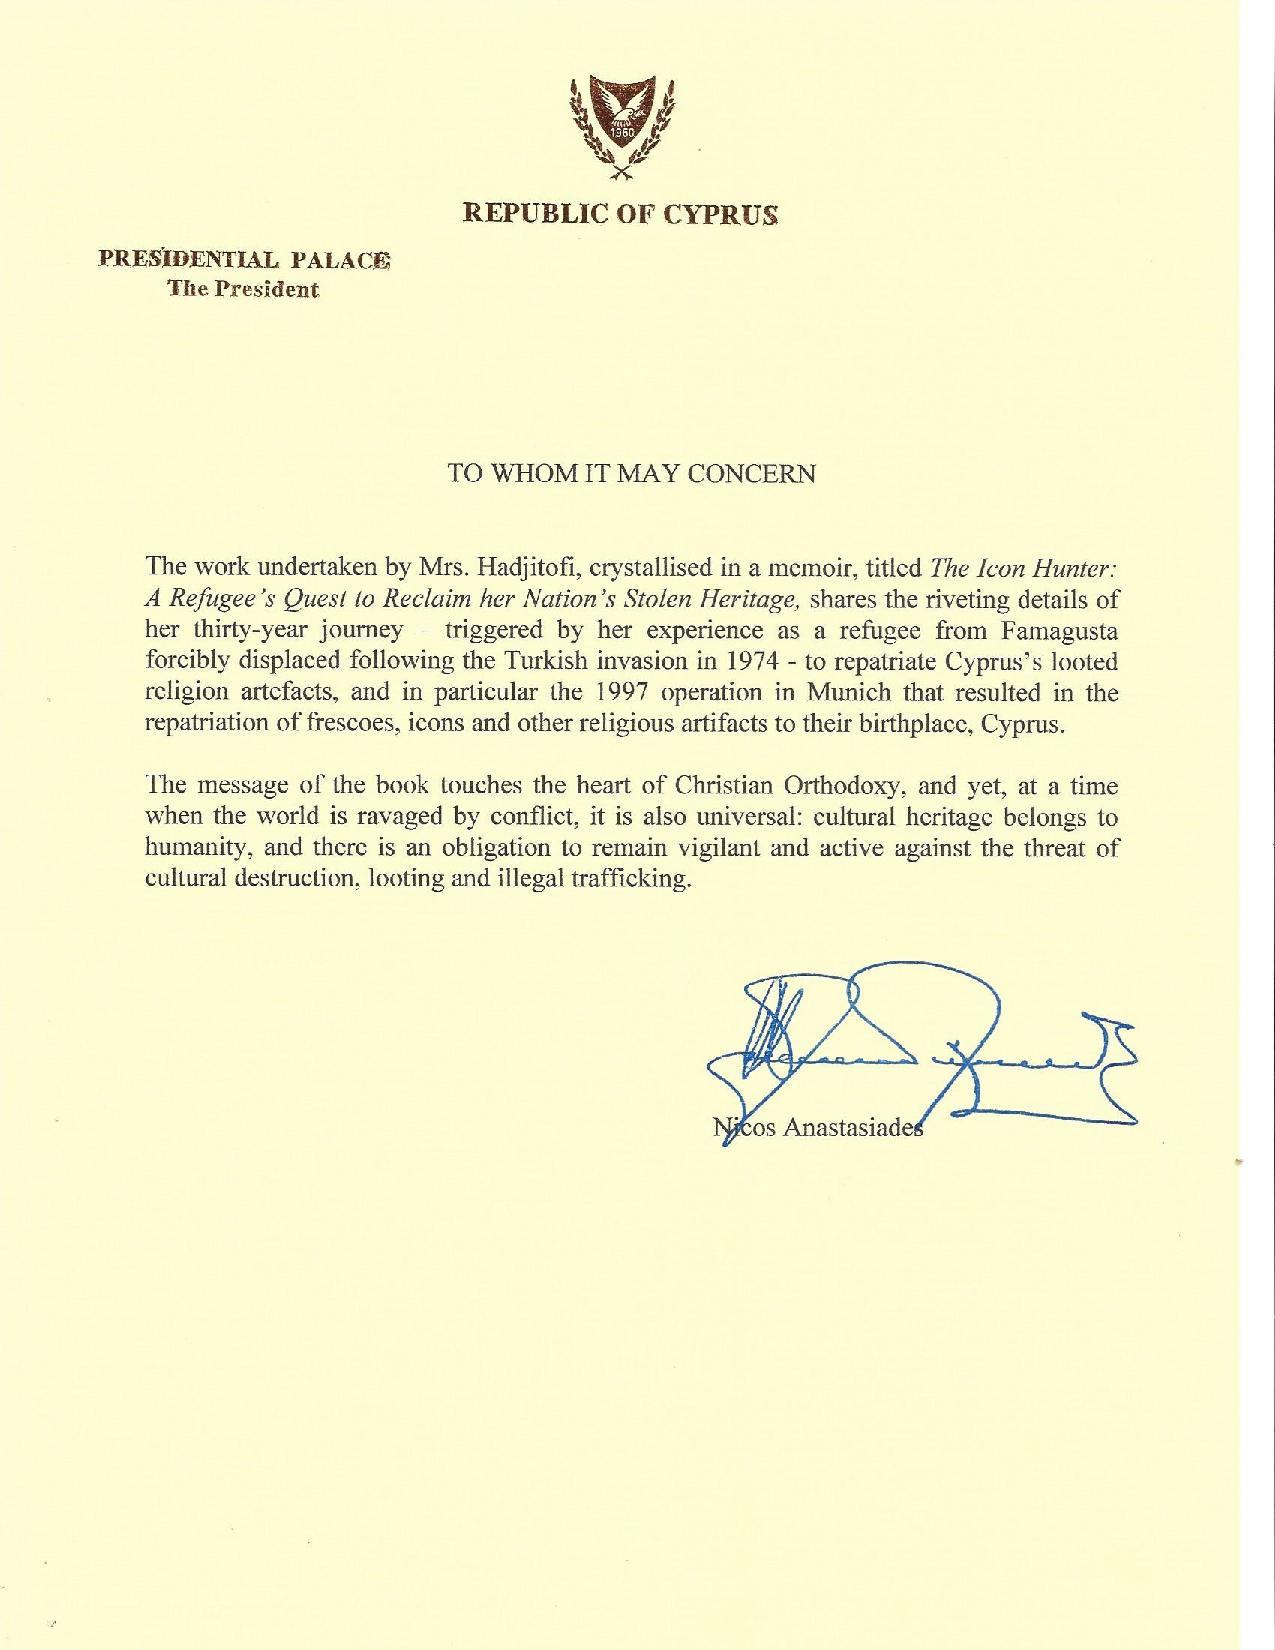 letter from the president of cyprus